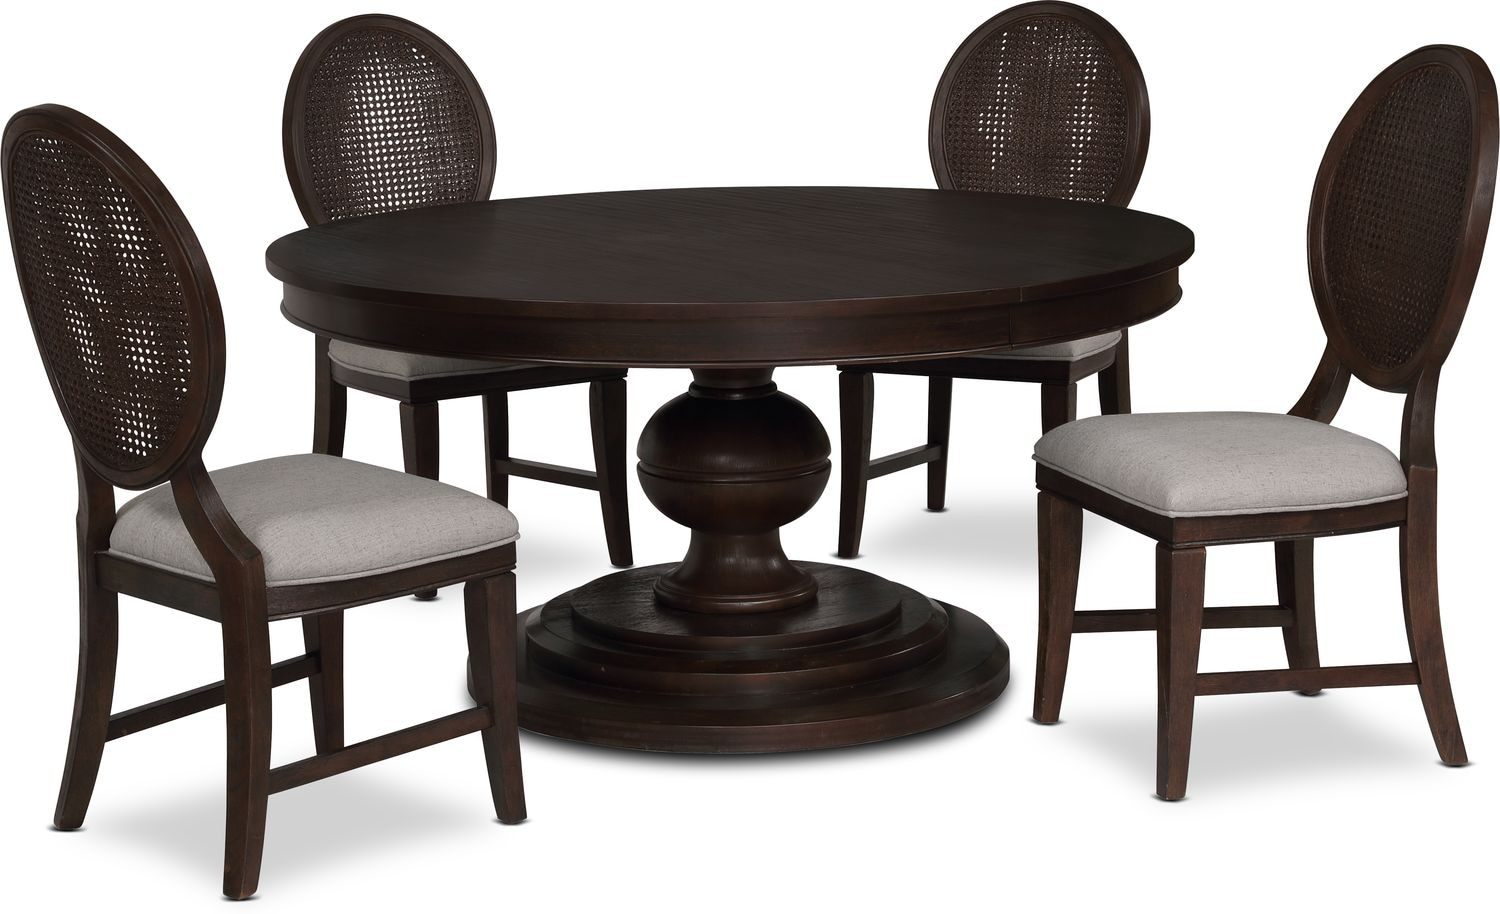 Dining Room Furniture - Wilder Round Dining Table and 4 Side Chairs